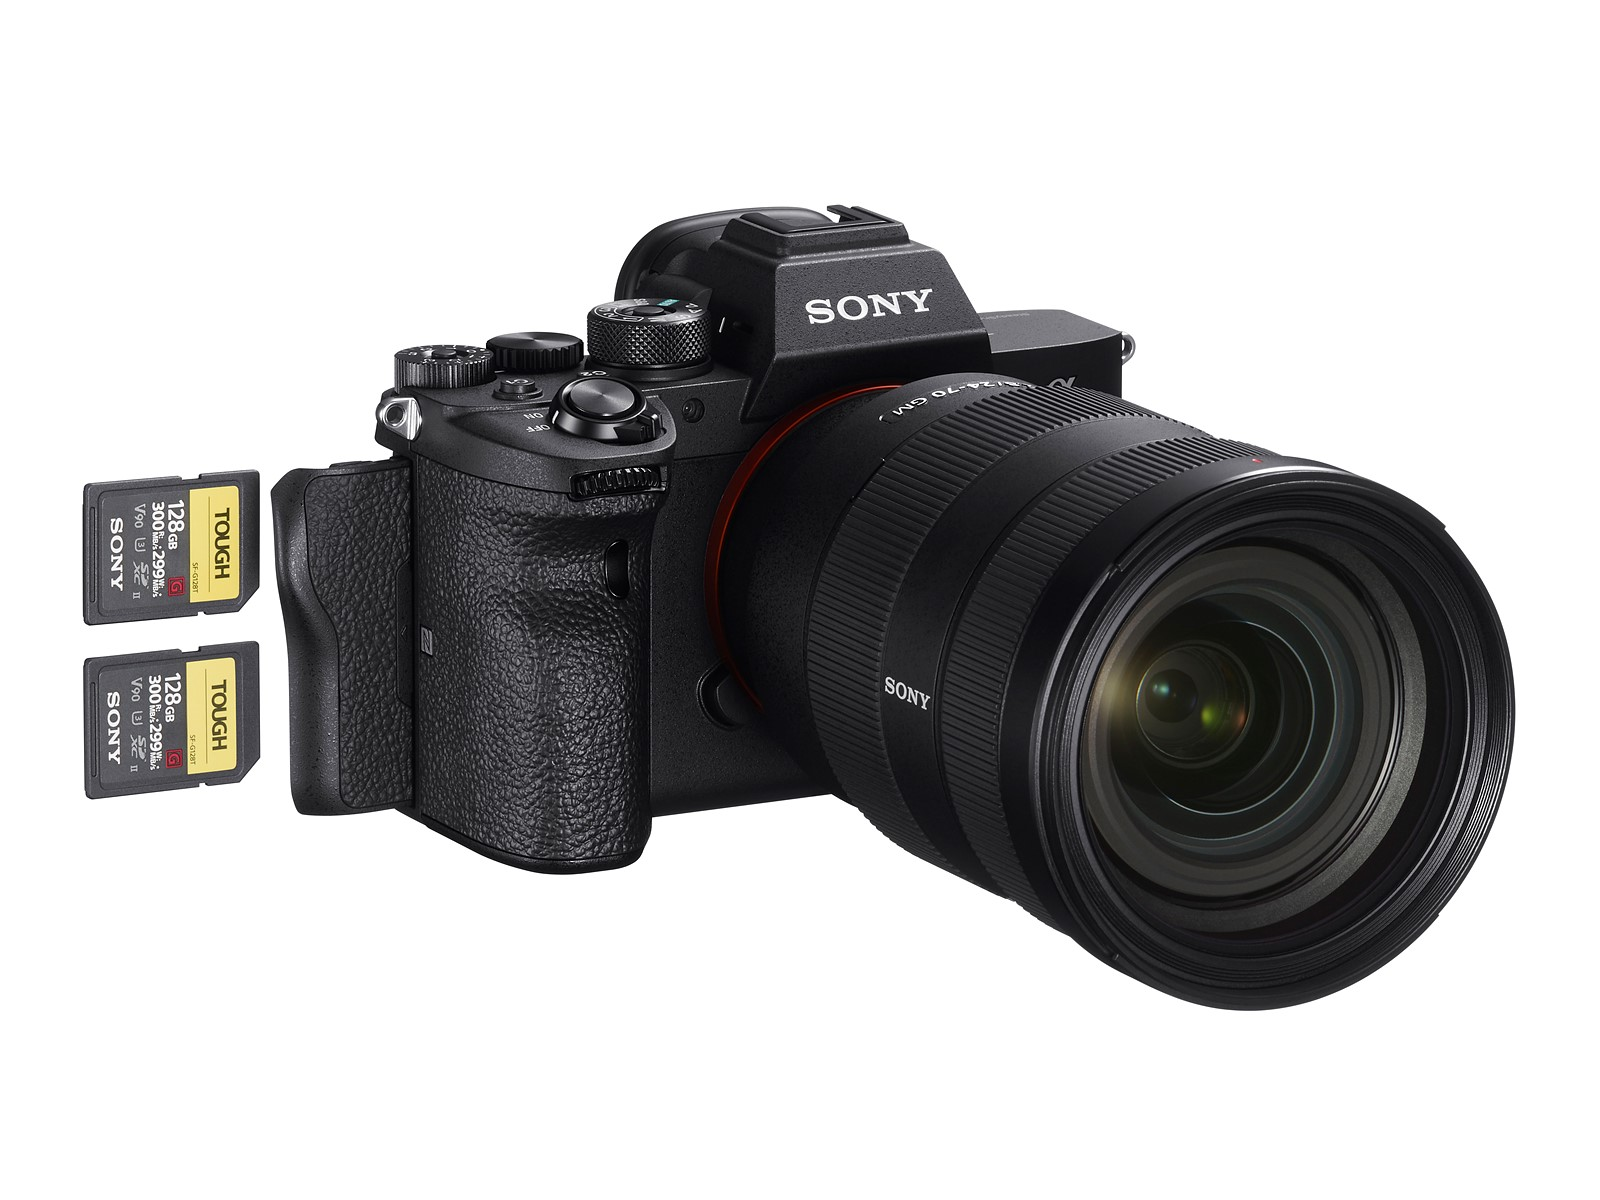 Industry News: Sony Introduces the High-resolution A7R IV with